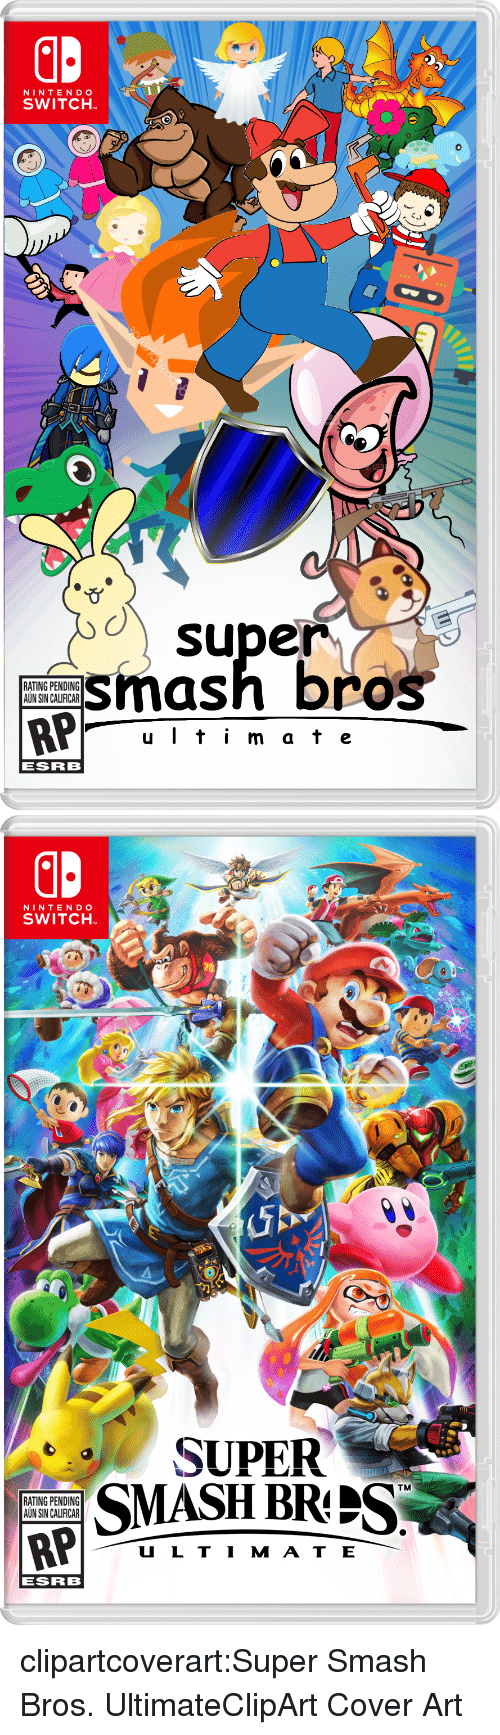 super smash bros: NINTENDO  SWITCH  o super  smash bros  RATING PENDING  AUN SIN CALIFICAR  u Iti m at e  ESRB   NINTENDO  SWITCH  SUPER  SMASH BRIS  TM  RATING PENDING  AUN SIN CALIFICAR  U L TI M AT E  ESRB clipartcoverart:Super Smash Bros. UltimateClipArt Cover Art